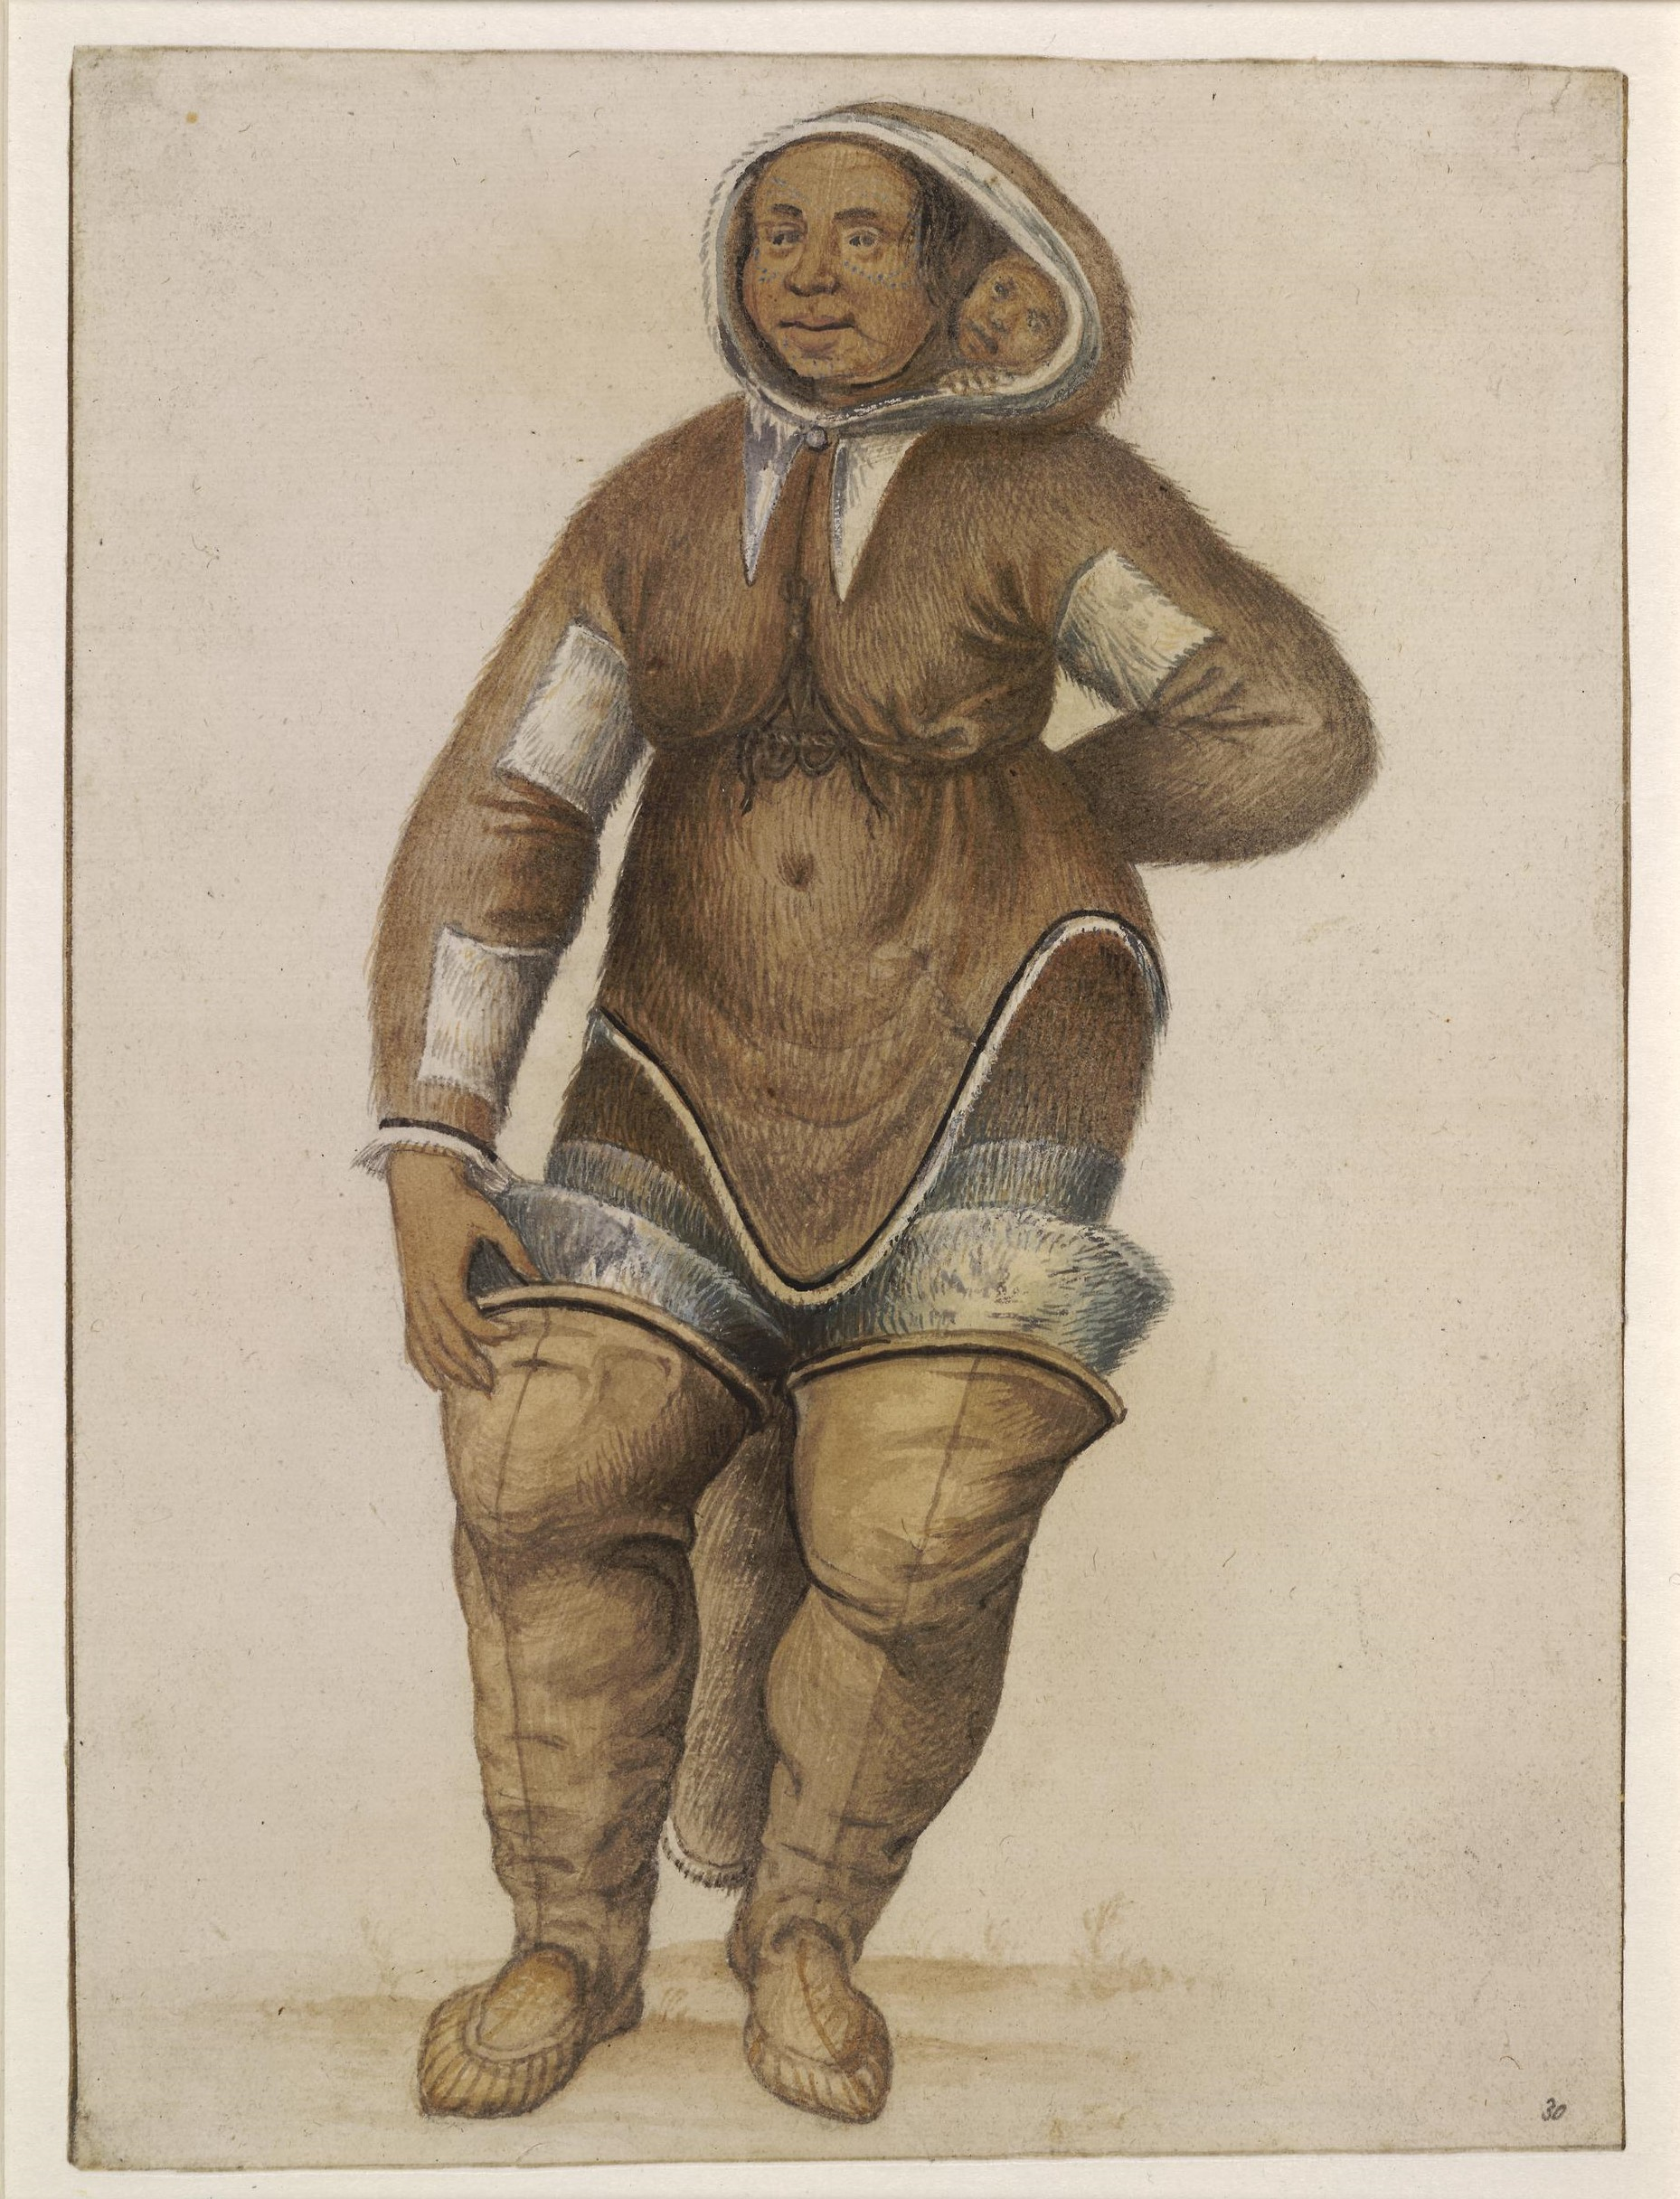 Drawing showing a woman dressed in a brown amautis parka,. A child can be seen peering out from her hood. She wears thigh length brown boots.